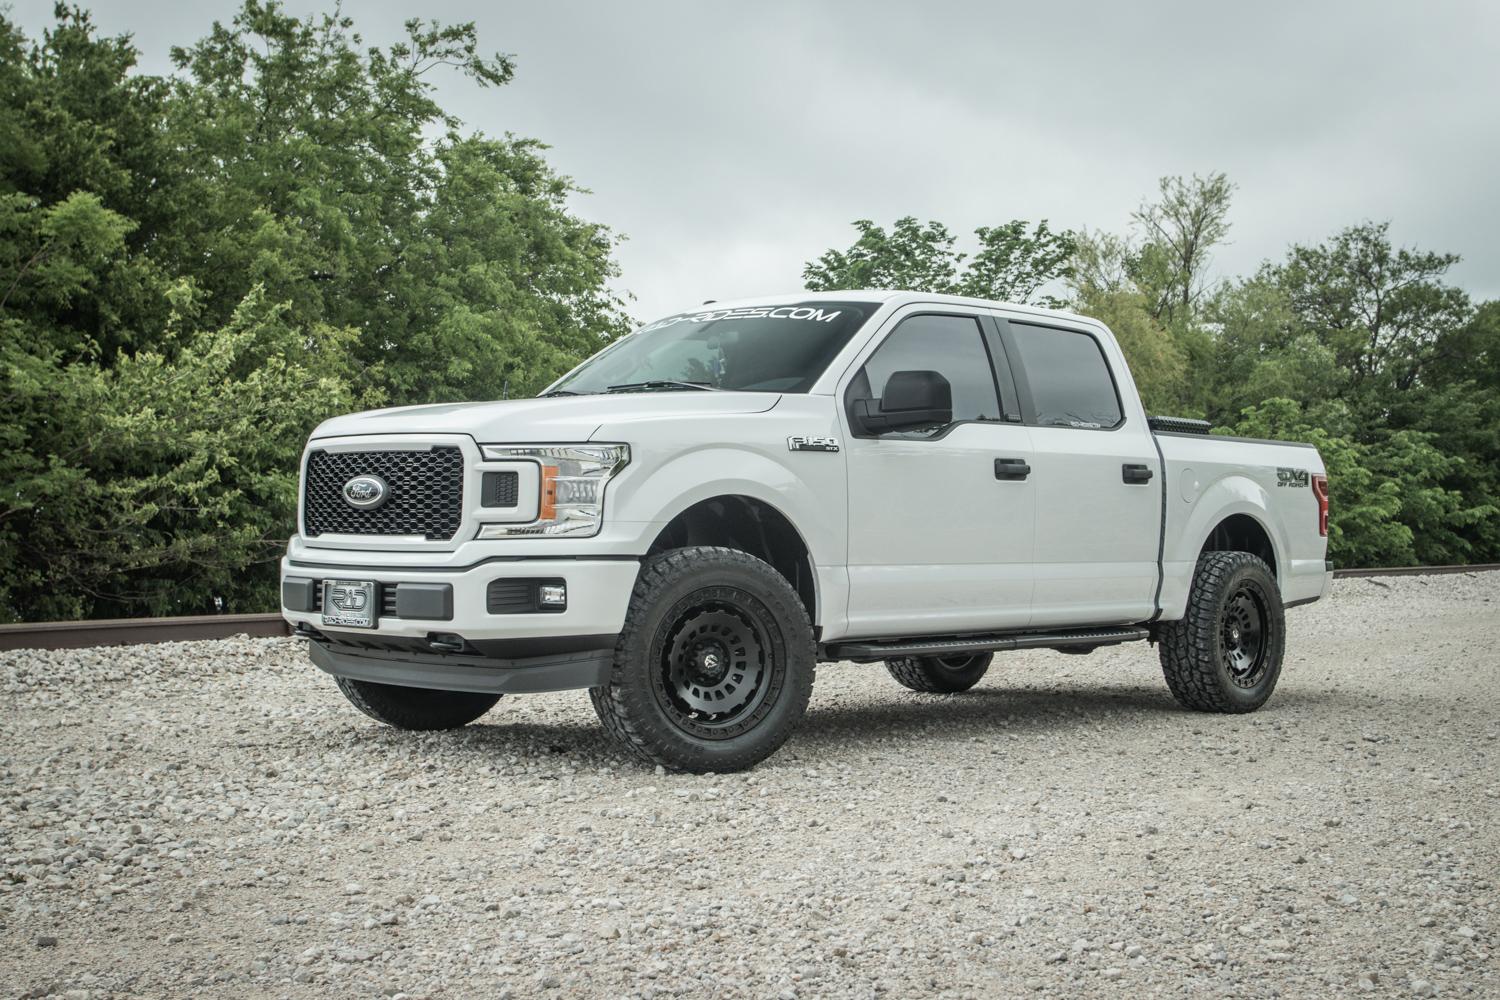 2019 Ford F 150 Stx Oxford White With Fuel 20 Inch Zephyr Beadlock Wheels